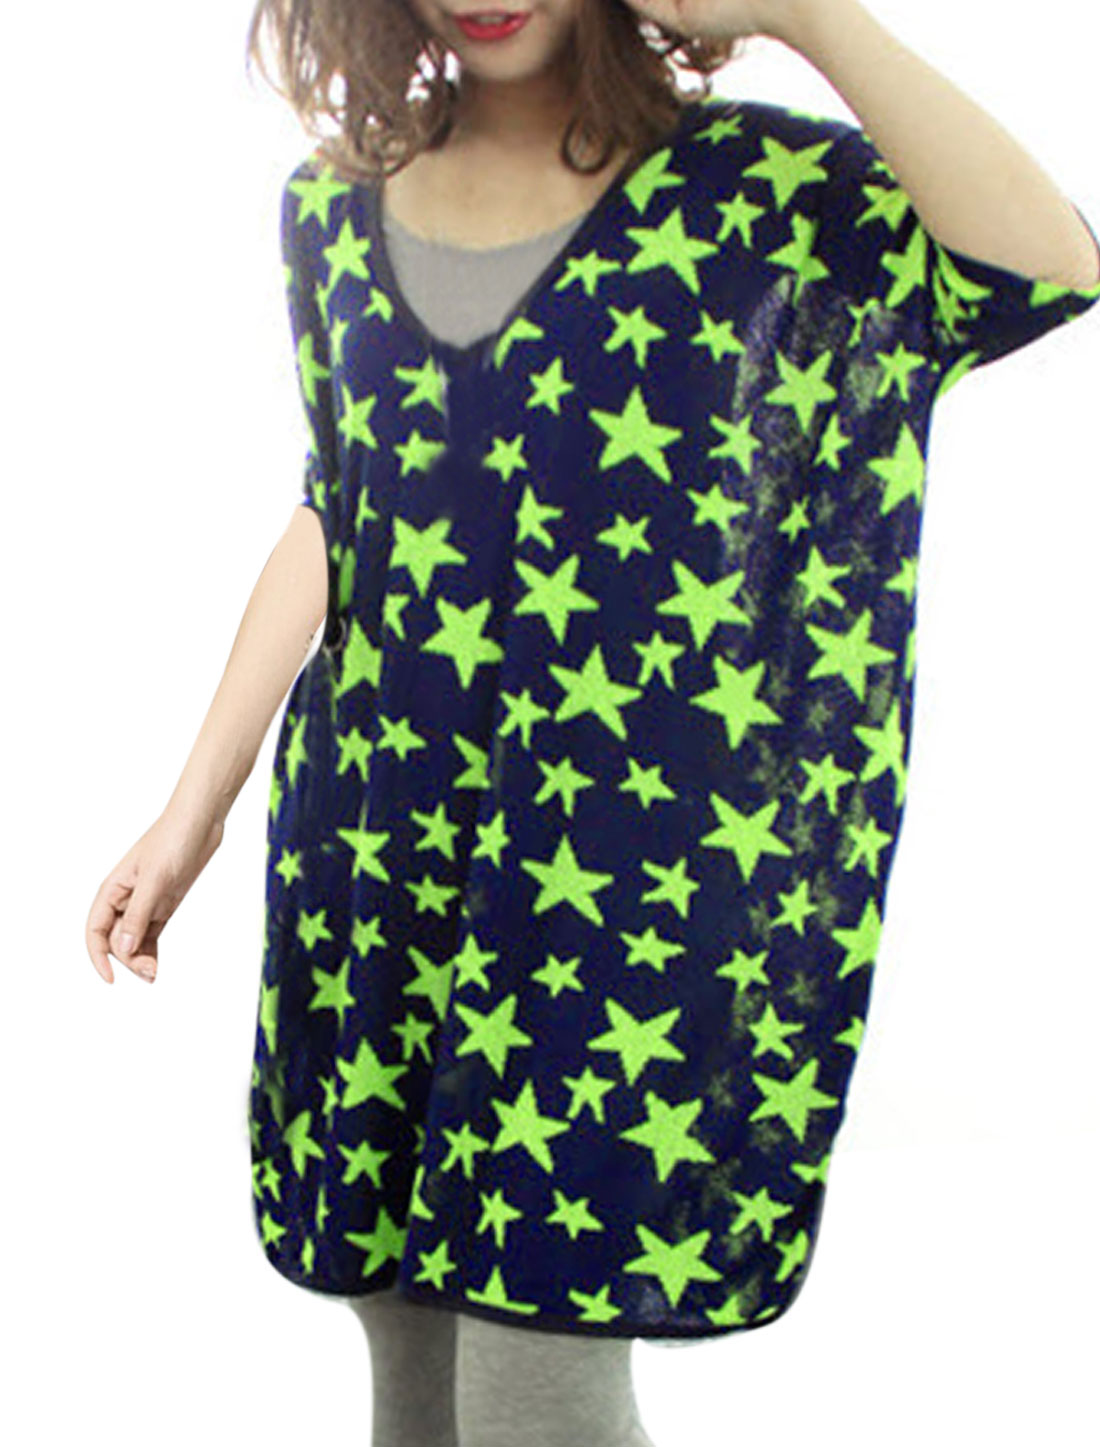 Lady Korean Style Pullover Stars Pattern Tunic Top Navy Blue Lime S